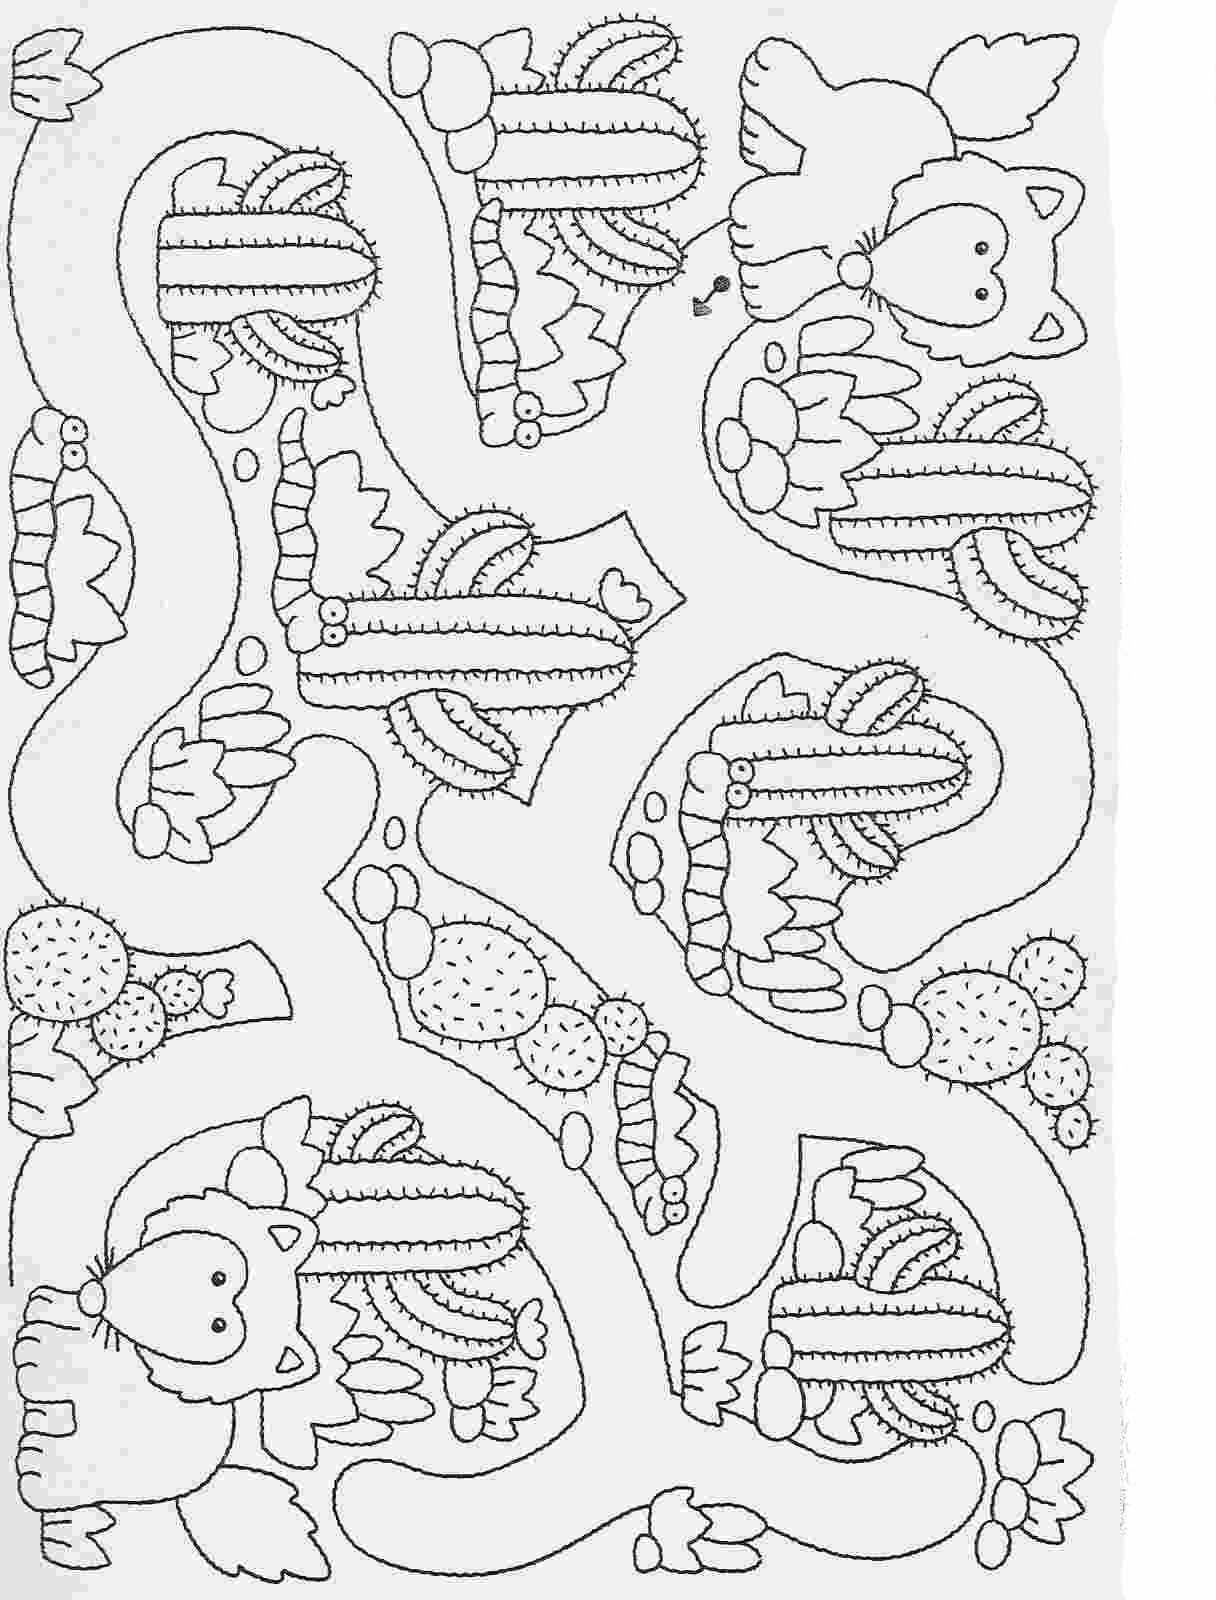 Elementary school worksheets complete and coloring 61 activities elementary school worksheets complete and coloring 61 robcynllc Image collections